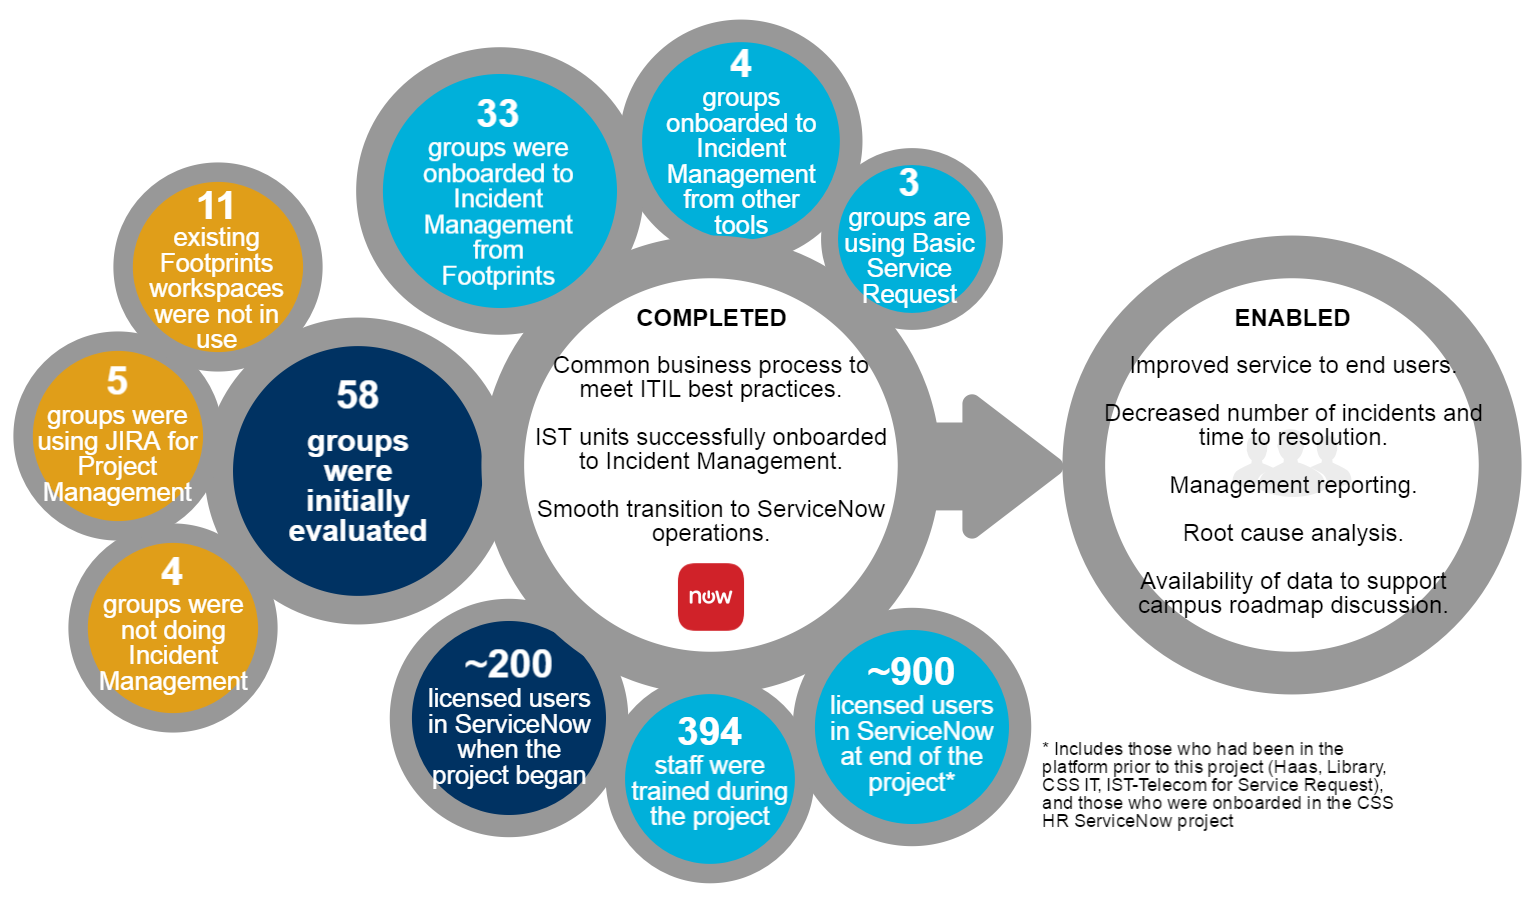 graphic of project accomplishments